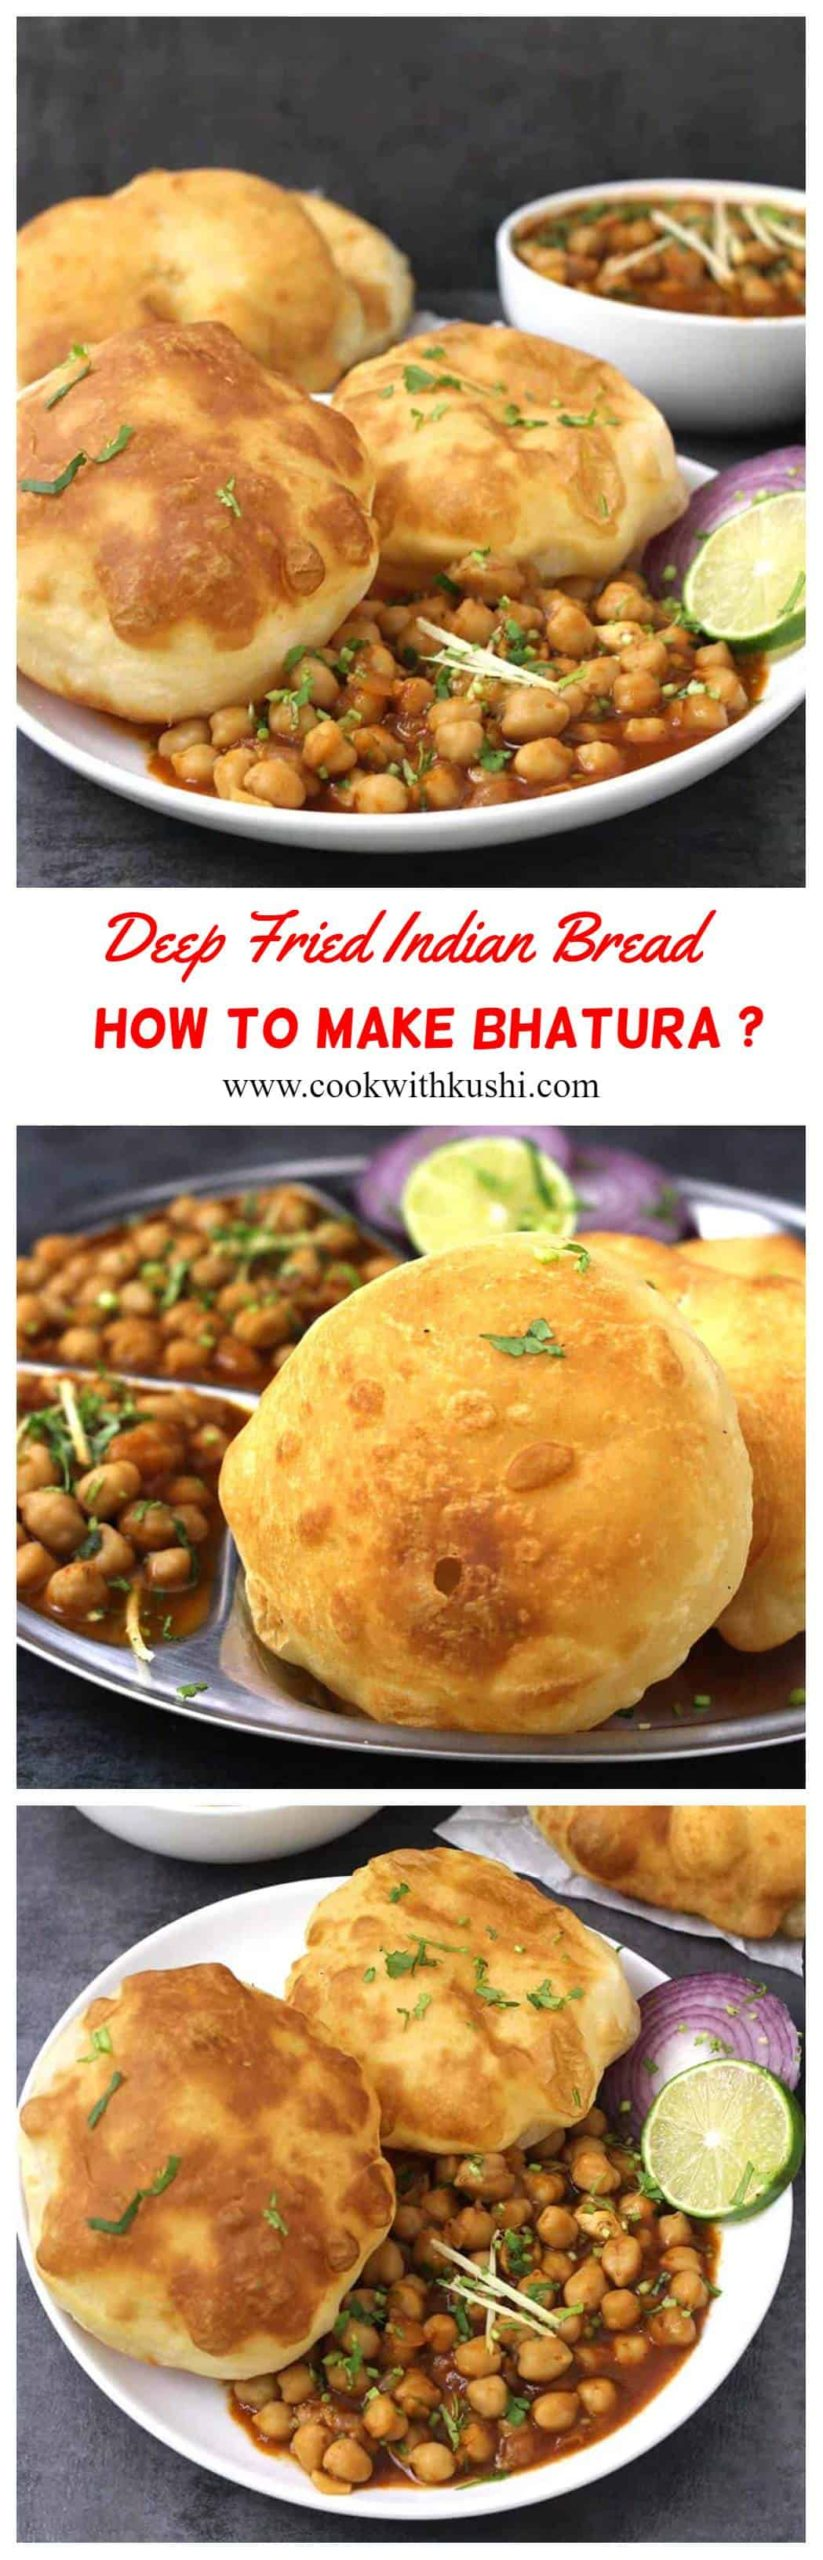 Bhatura or Bhature is deep fried Indian leavened bread that is crisp on outisde, soft and fluffy in texture that can be served anytime of the day. Chole Bhature or Chana Bhatura is a popular combo served in any restaurants or dhabas. #indianbread #indiabreakfast #streetfood #indianfood #indianrecipes #vegetarianrecipes #veganbread #lunch #dinner #mealideas